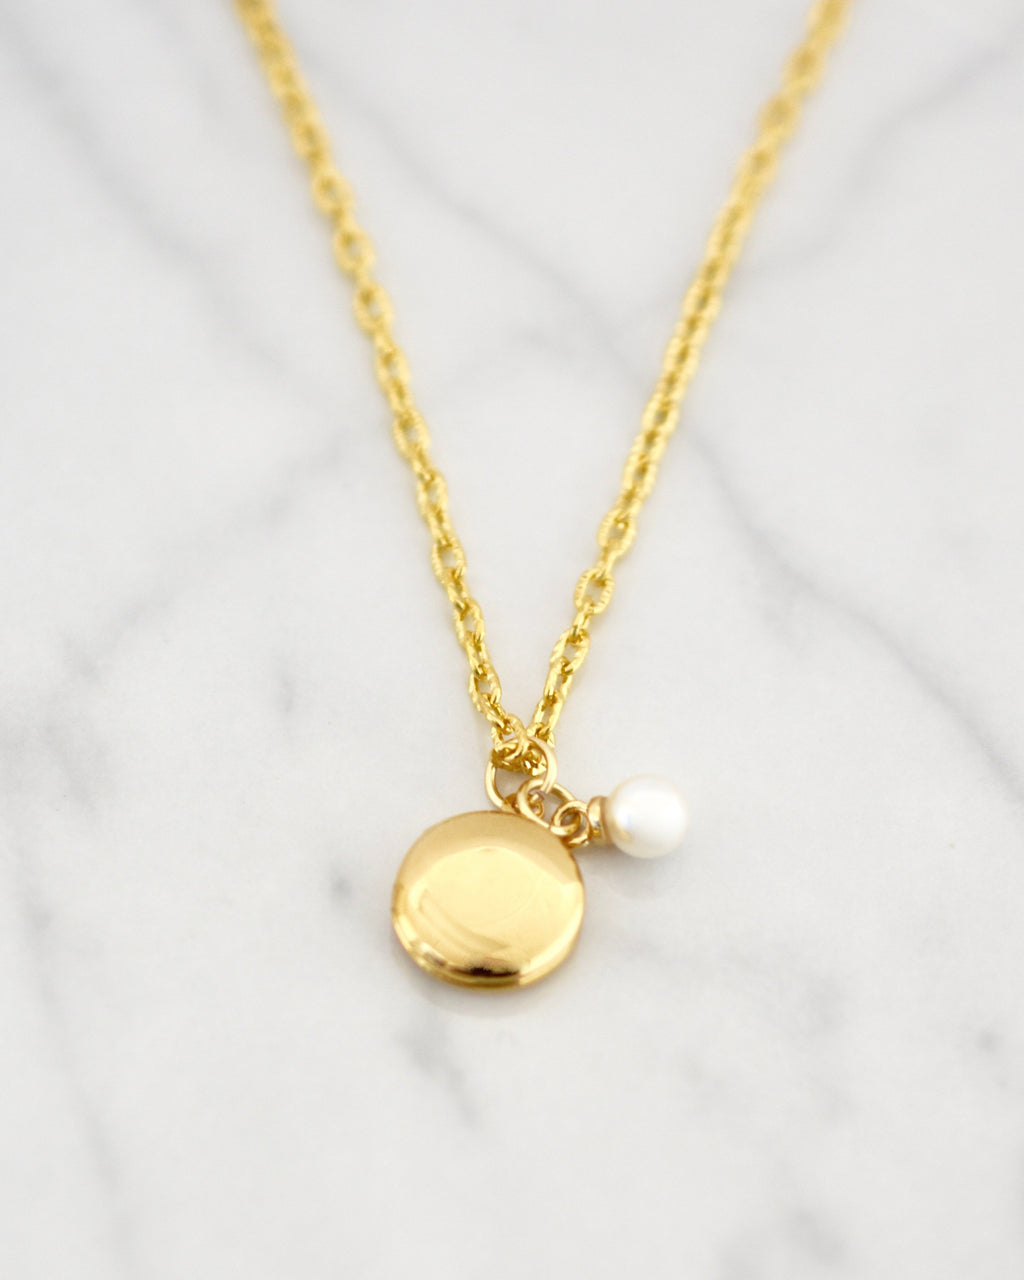 DAINTY LOCKET NECKLACE